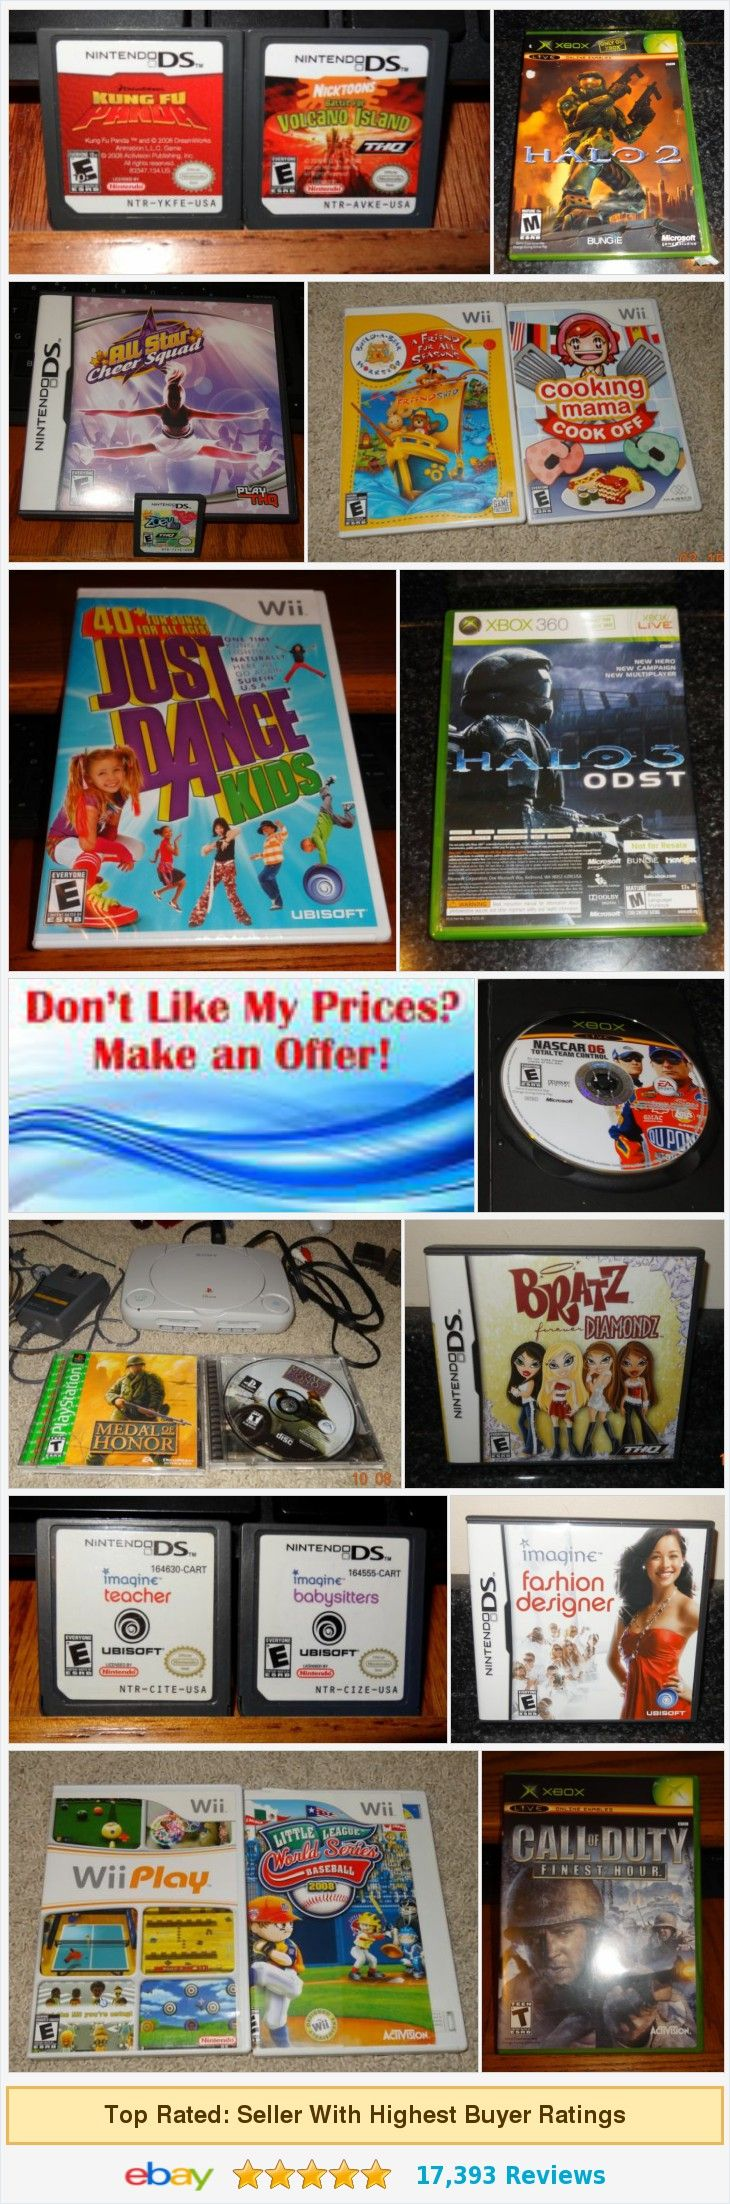 Shop here for great games! Wii, Nintendo, XBox!Great deals from TLNS Resale Used Vintage Shop | eBay store http://stores.ebay.com/TLNS-Resale-Used-Vintage-Shop/_i.html?_nkw=game&submit=Search&_sid=65841859